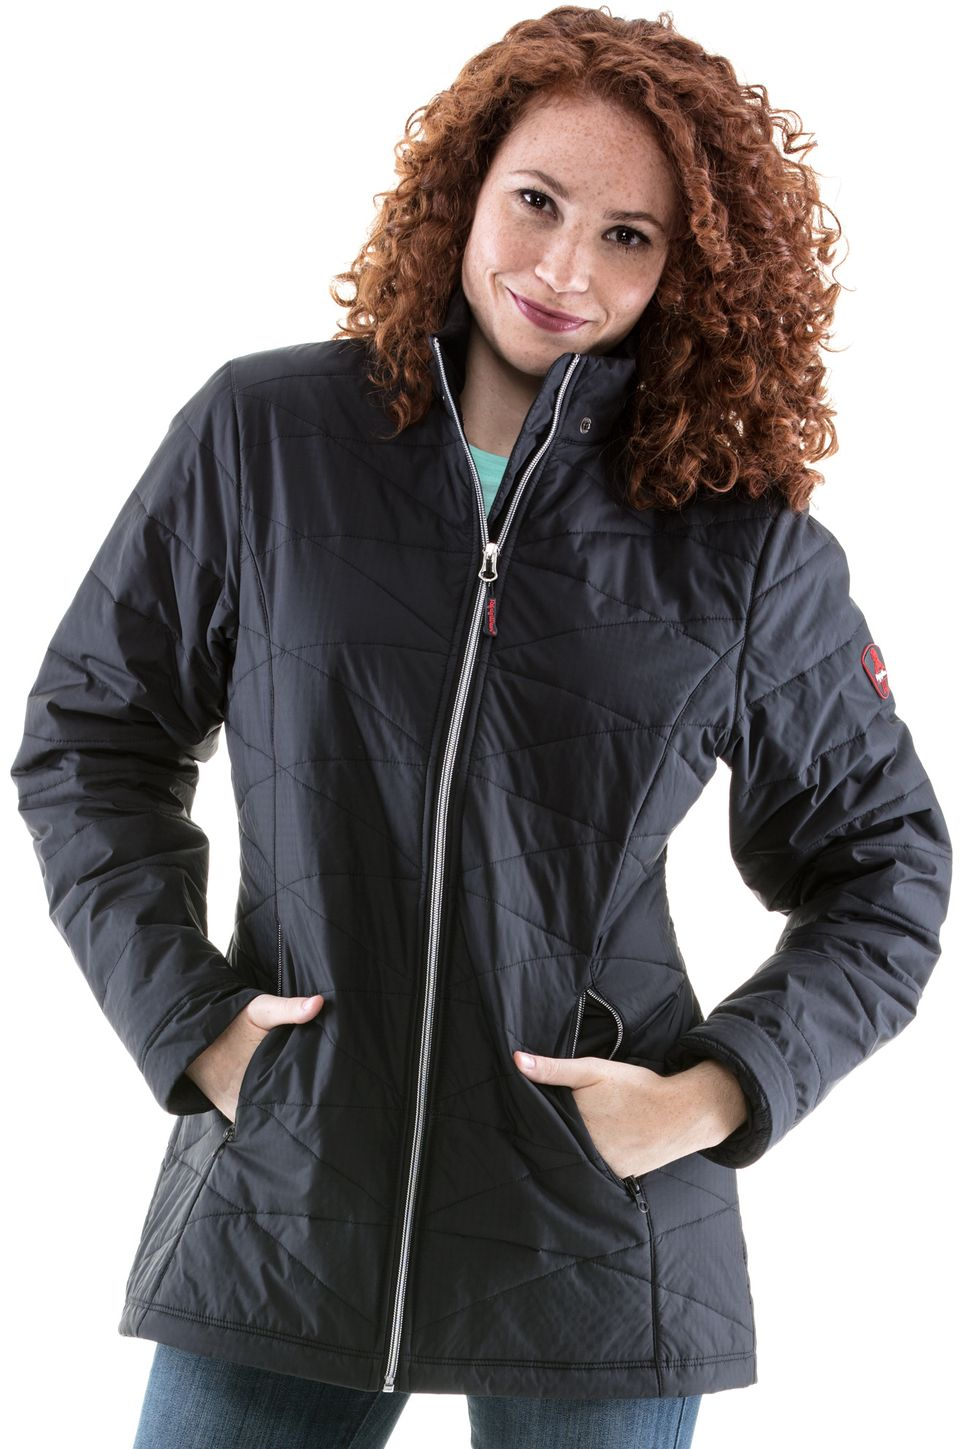 RefrigiWear 0423 Quilted Womens Insulated Work Jacket Example